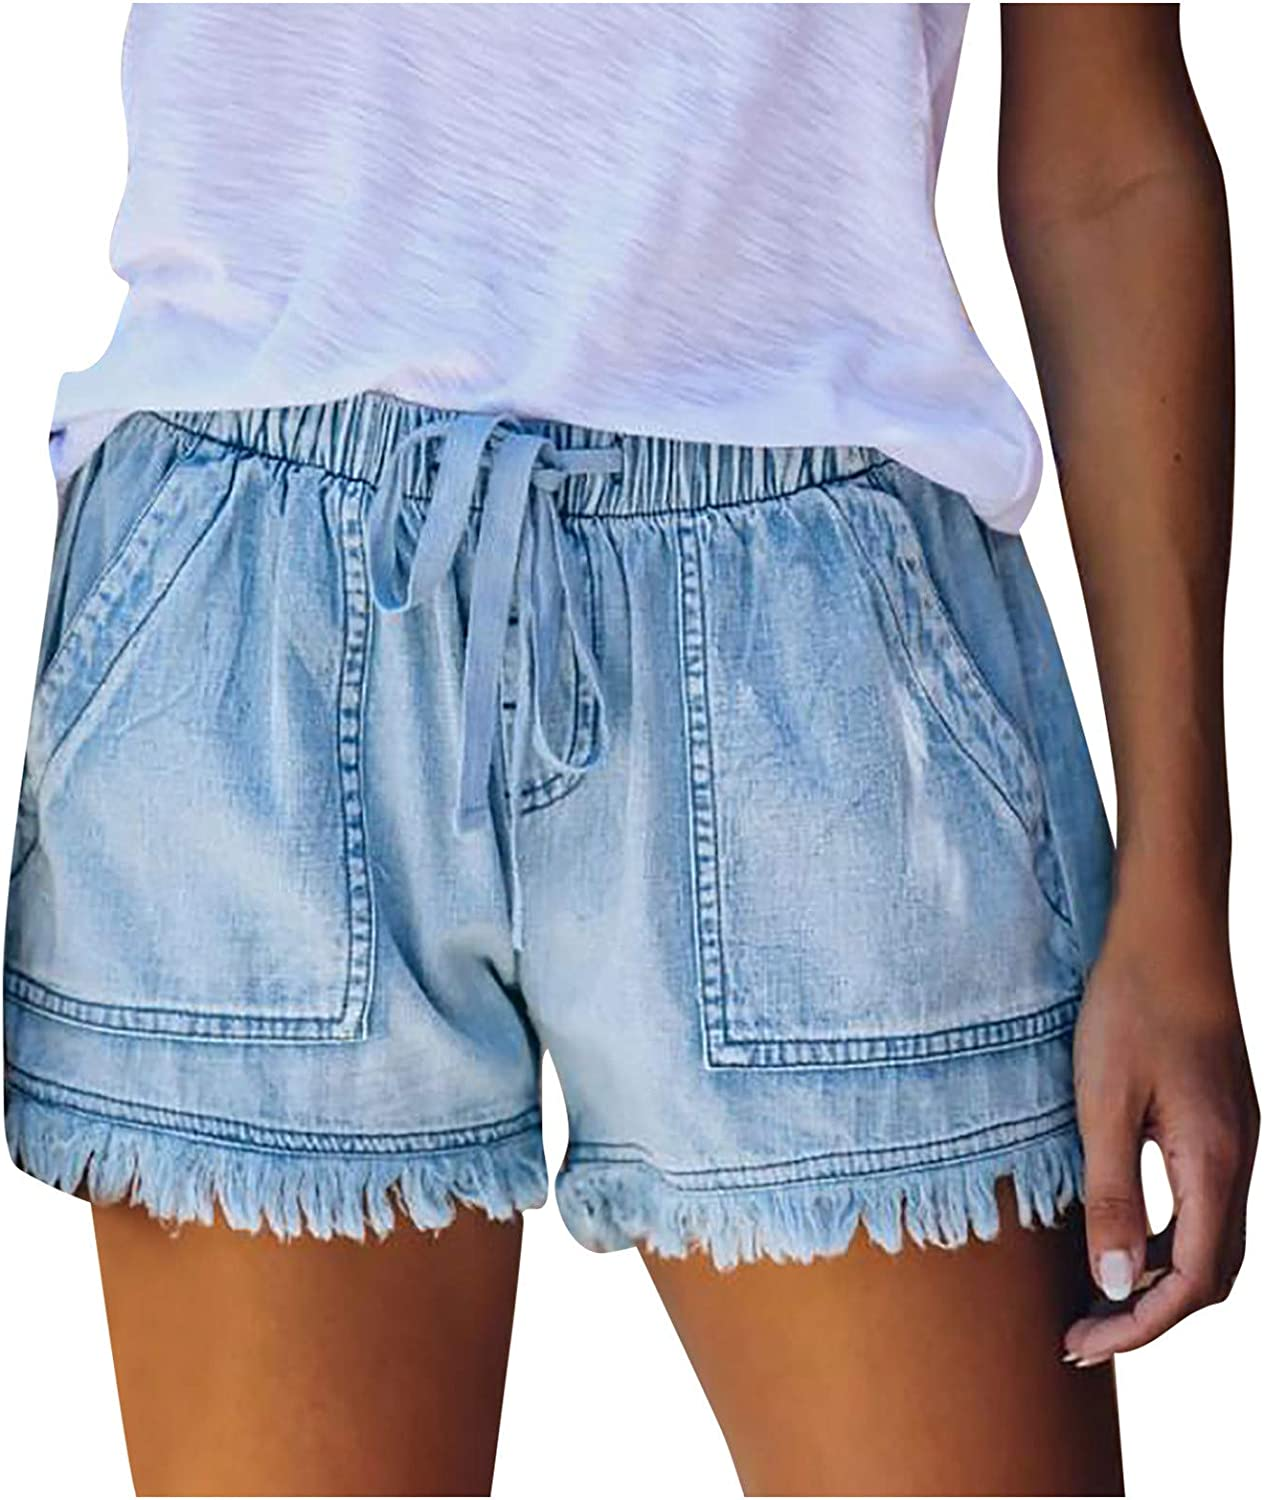 Denim Shorts for Women,Denim Shorts for Women Hot Casual Summer Stretchy Jeans Shorts with Pockets